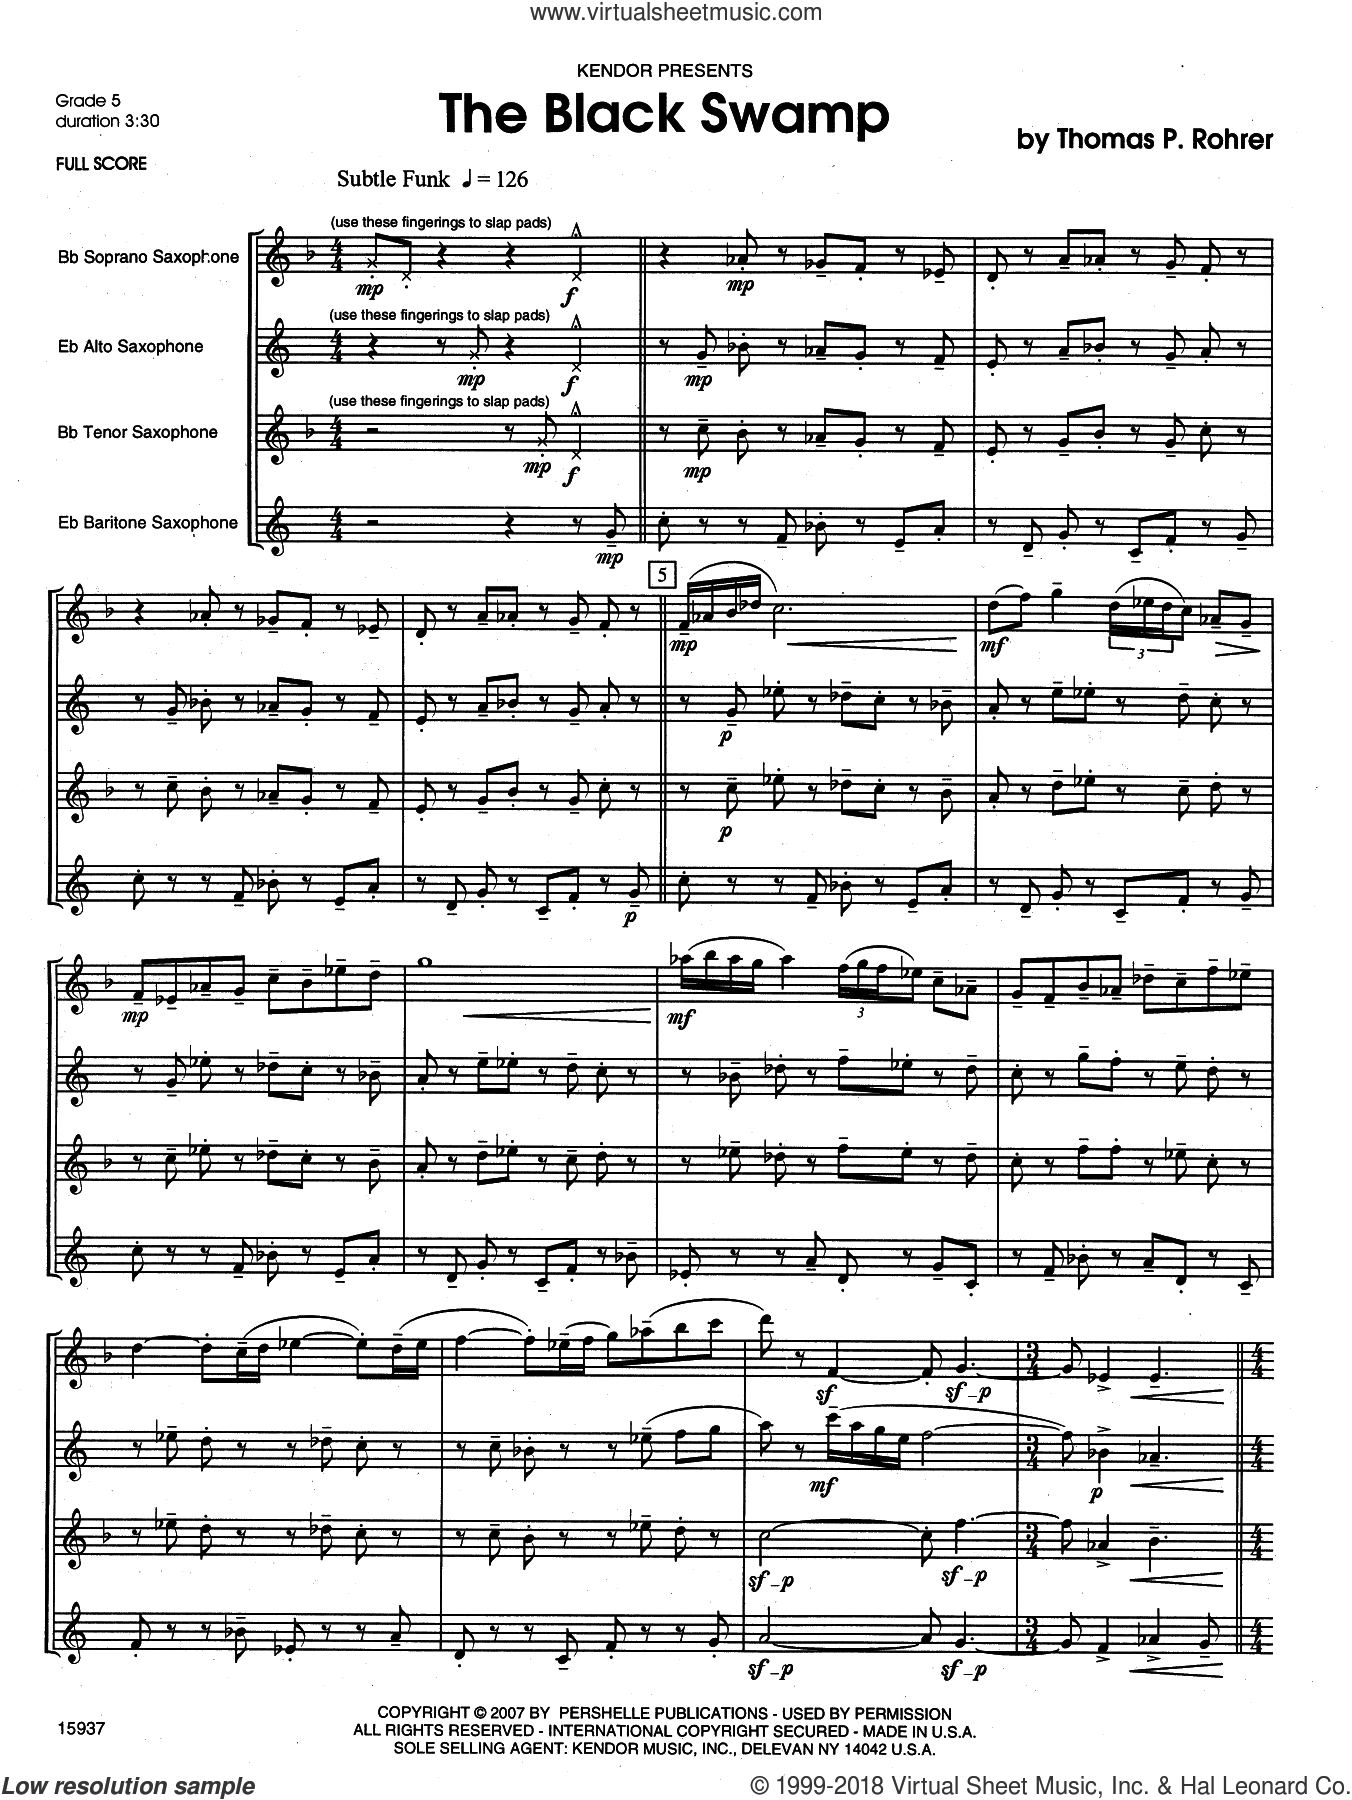 The Black Swamp (COMPLETE) sheet music for saxophone quartet by Rohrer, classical score, intermediate